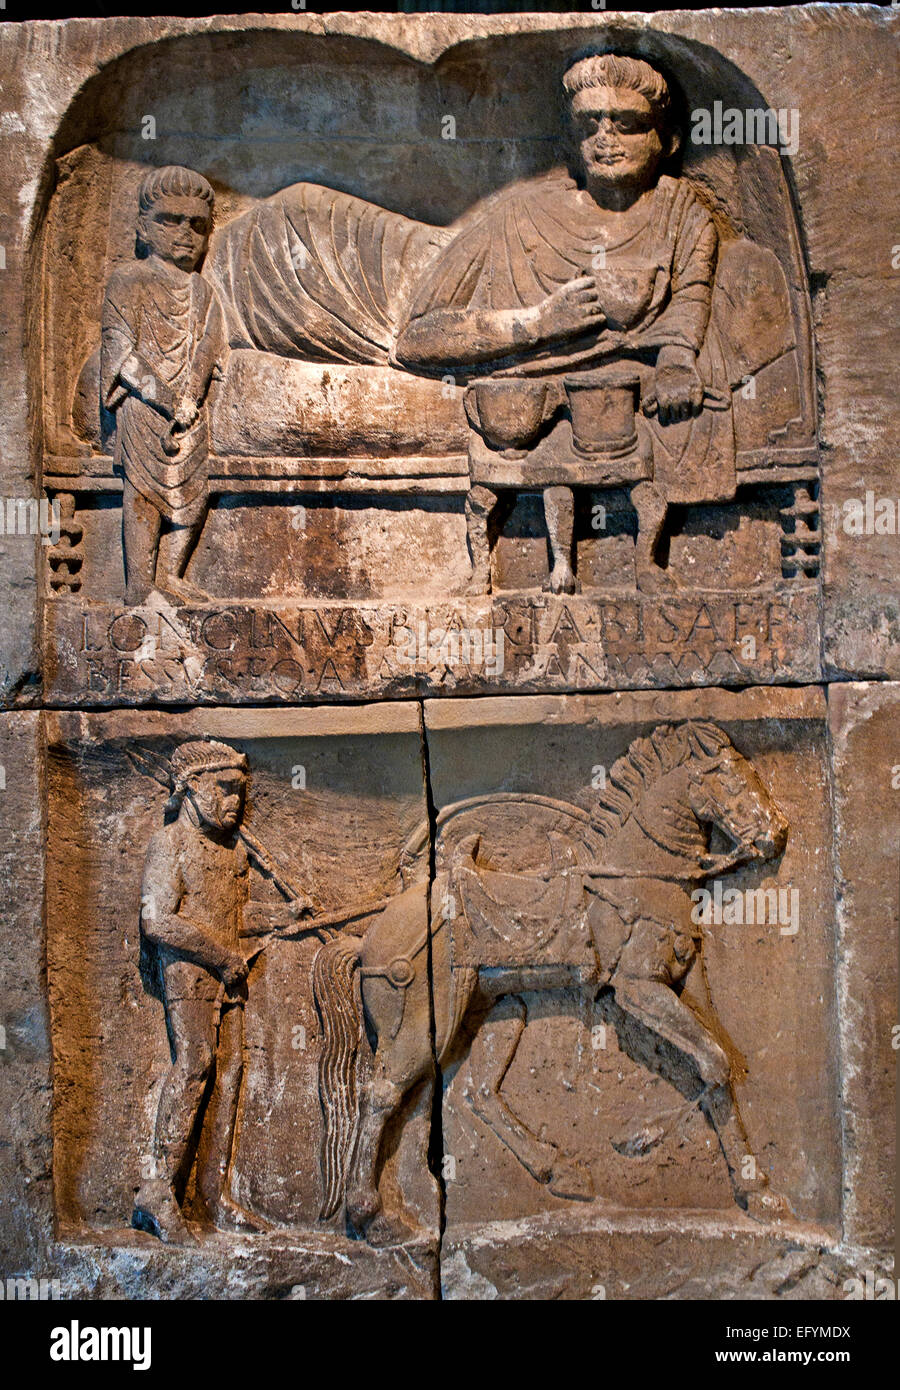 Grave stone of the cavalryman Longinus, 80-90 AD Roman Germanic Museum Cologne Germany - Stock Image